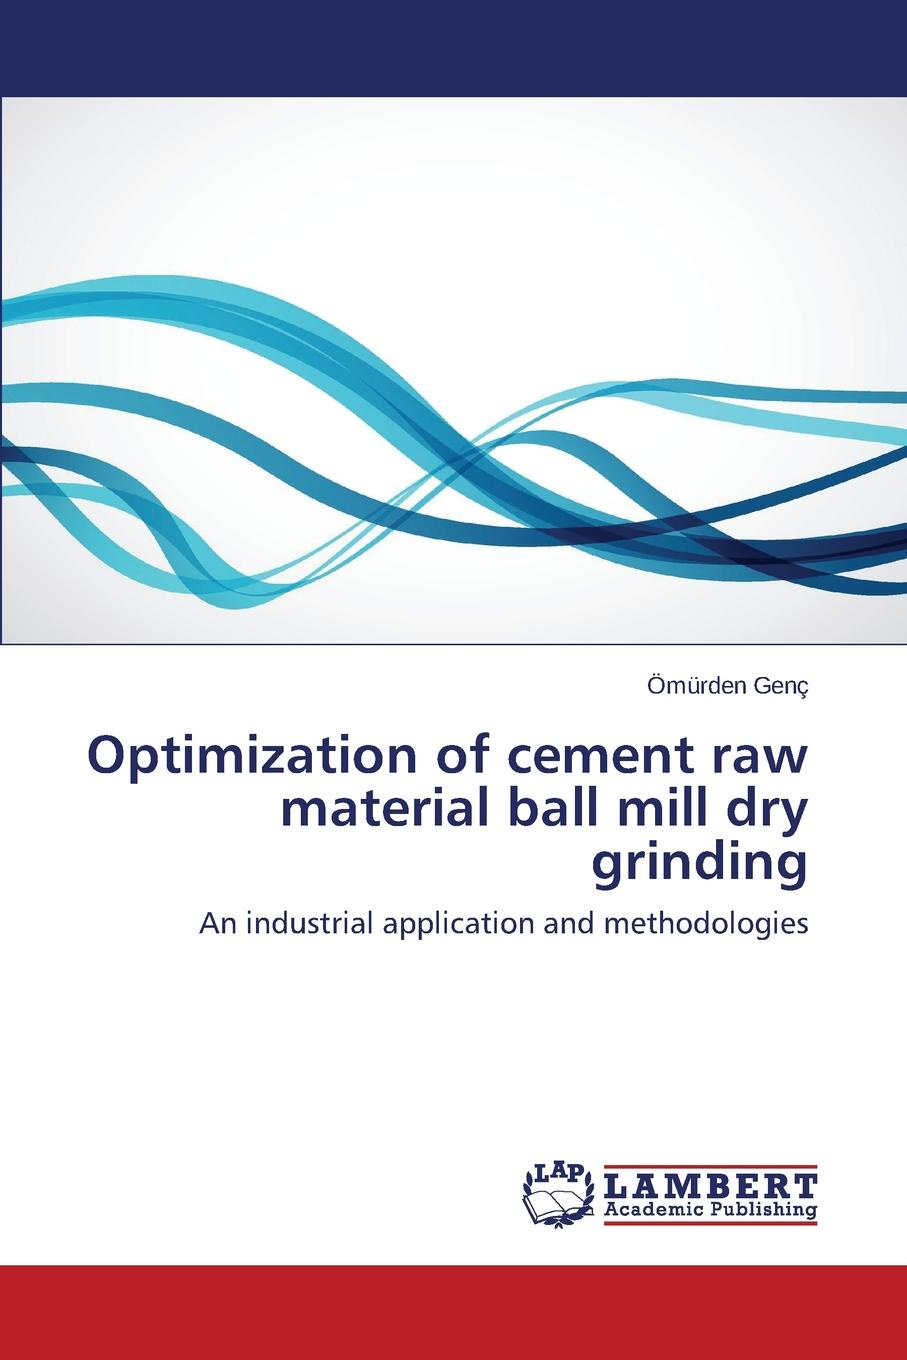 Optimization of cement raw material ball mill dry grinding AN INDUSTRIAL EXPERIENCE ON THE CEMENT RAW MATERIAL GRINDING PROCESS...